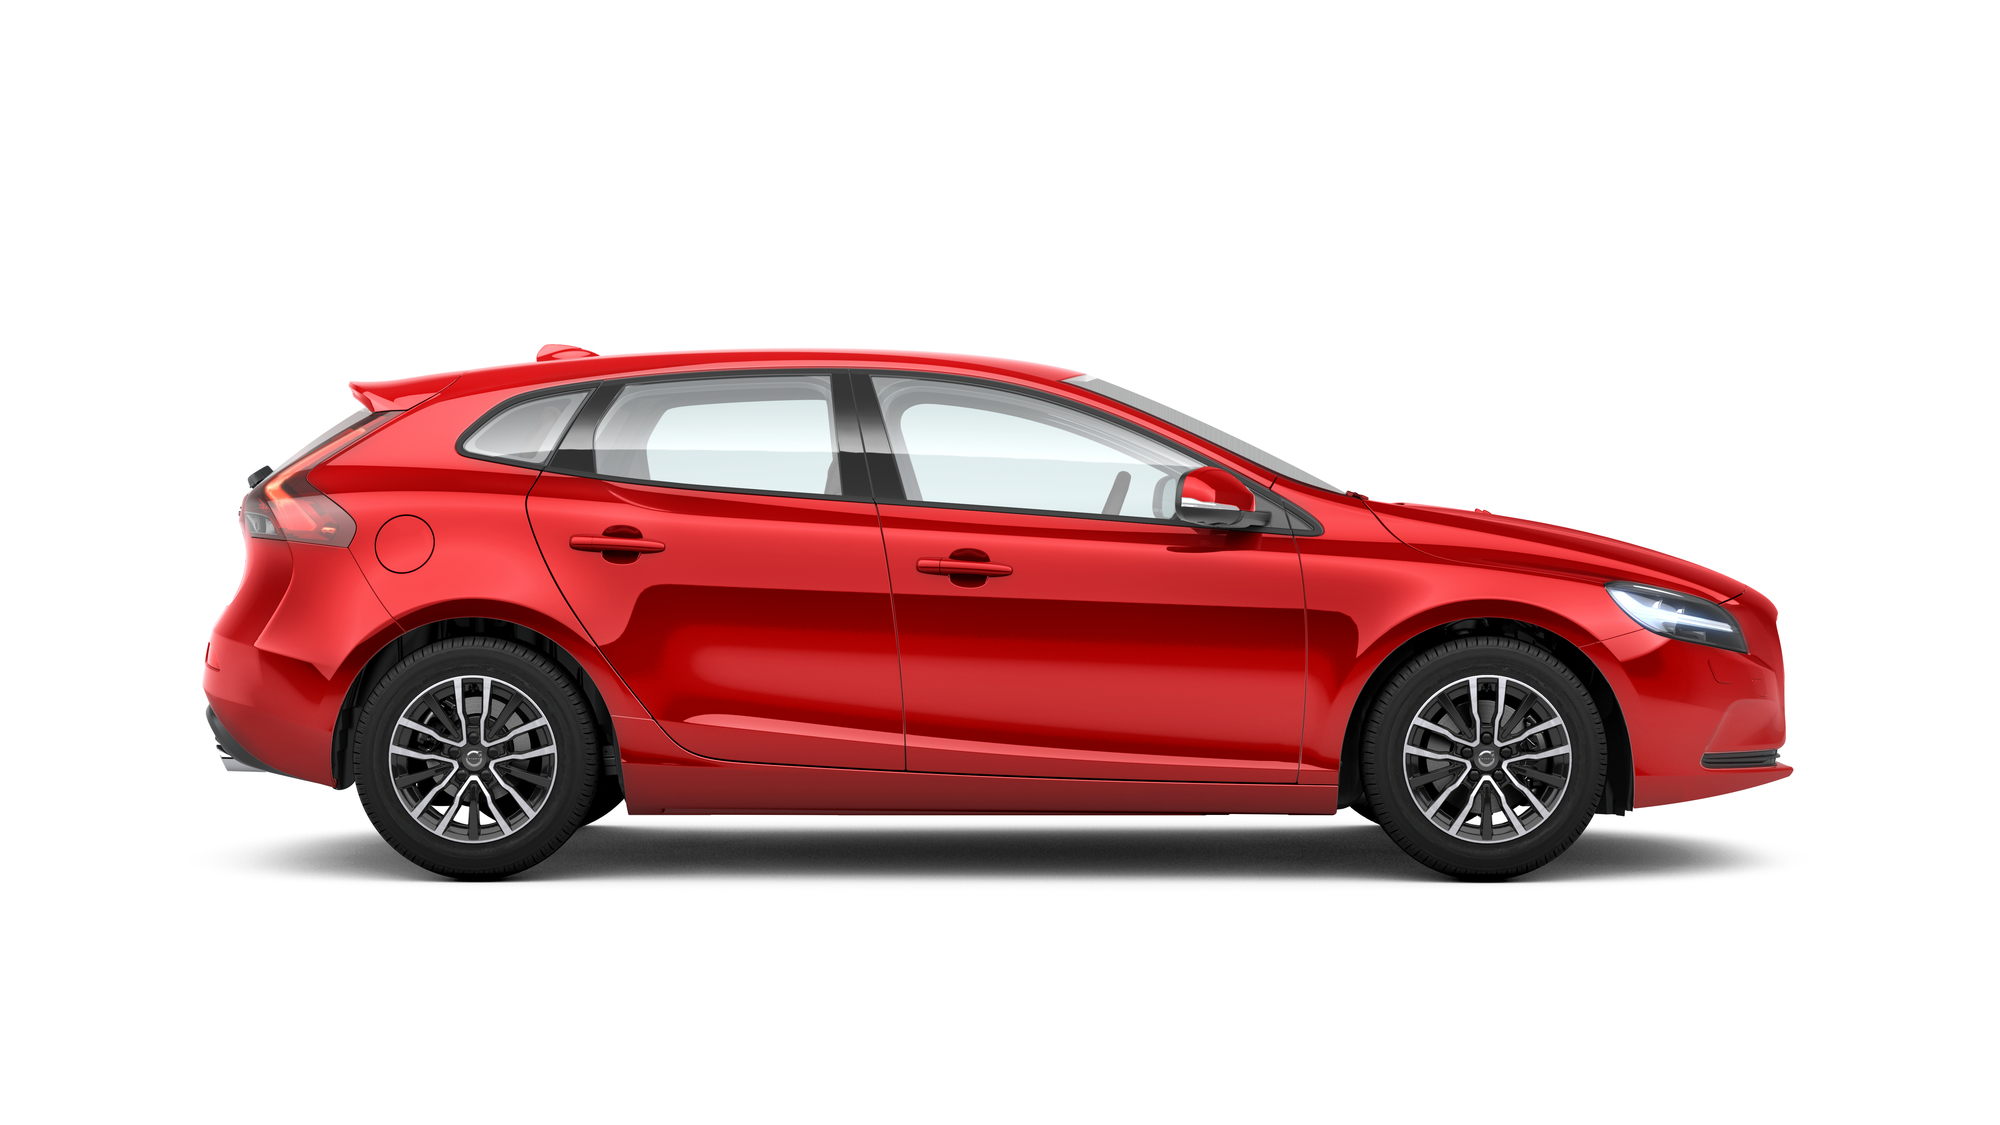 Side photo of the Volvo V40 in Passion Red